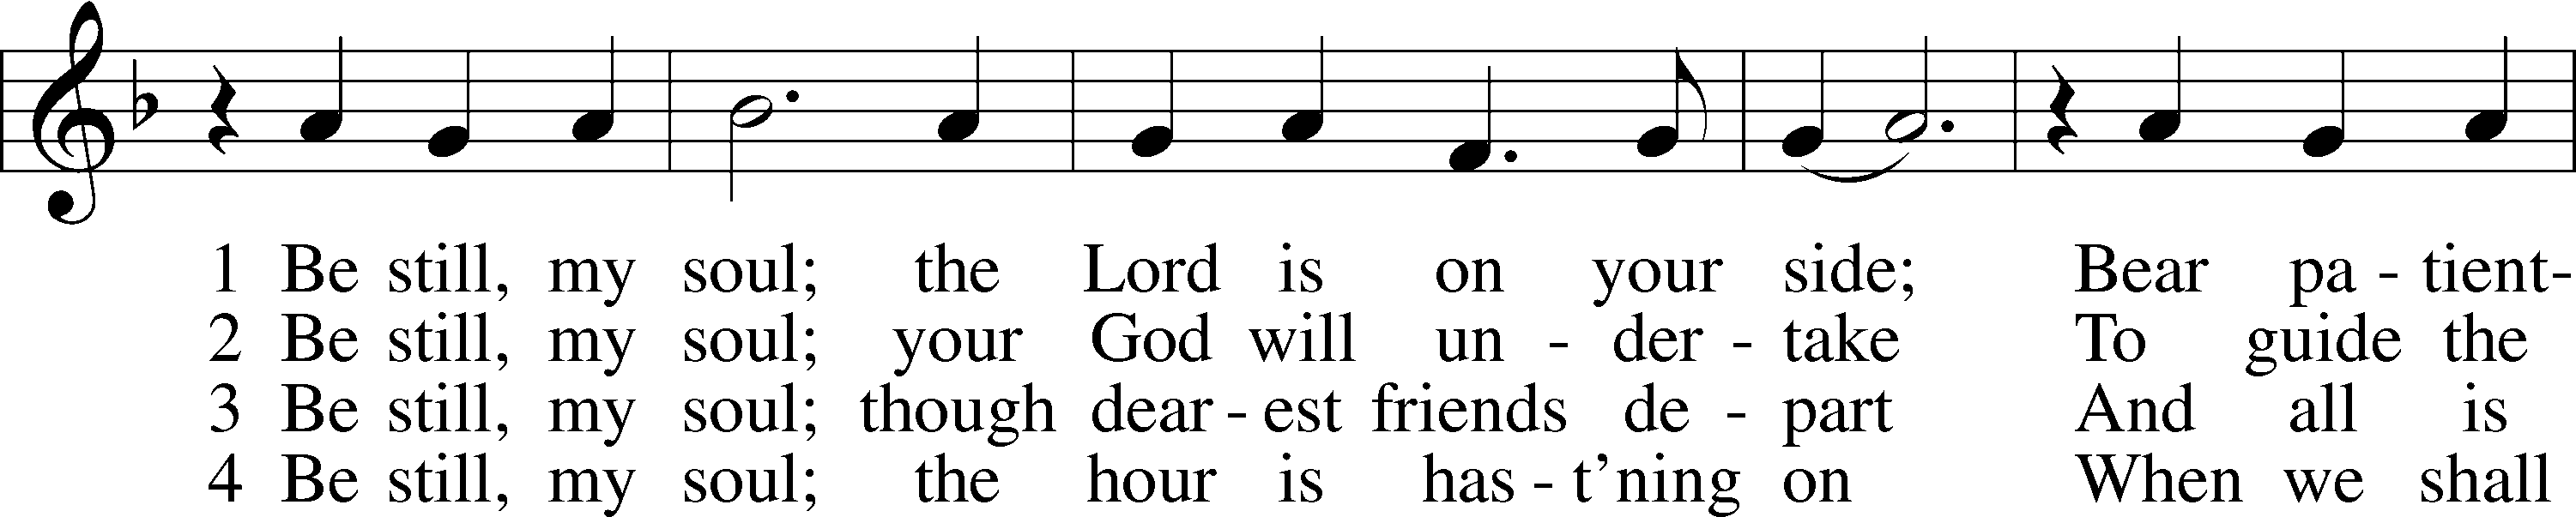 https://app.lutheranservicebuilder.com/static-assets/composite/print/noEjsphaL~aYy0otrWp17AAQrBUcfXHPbcIW5JXm.png